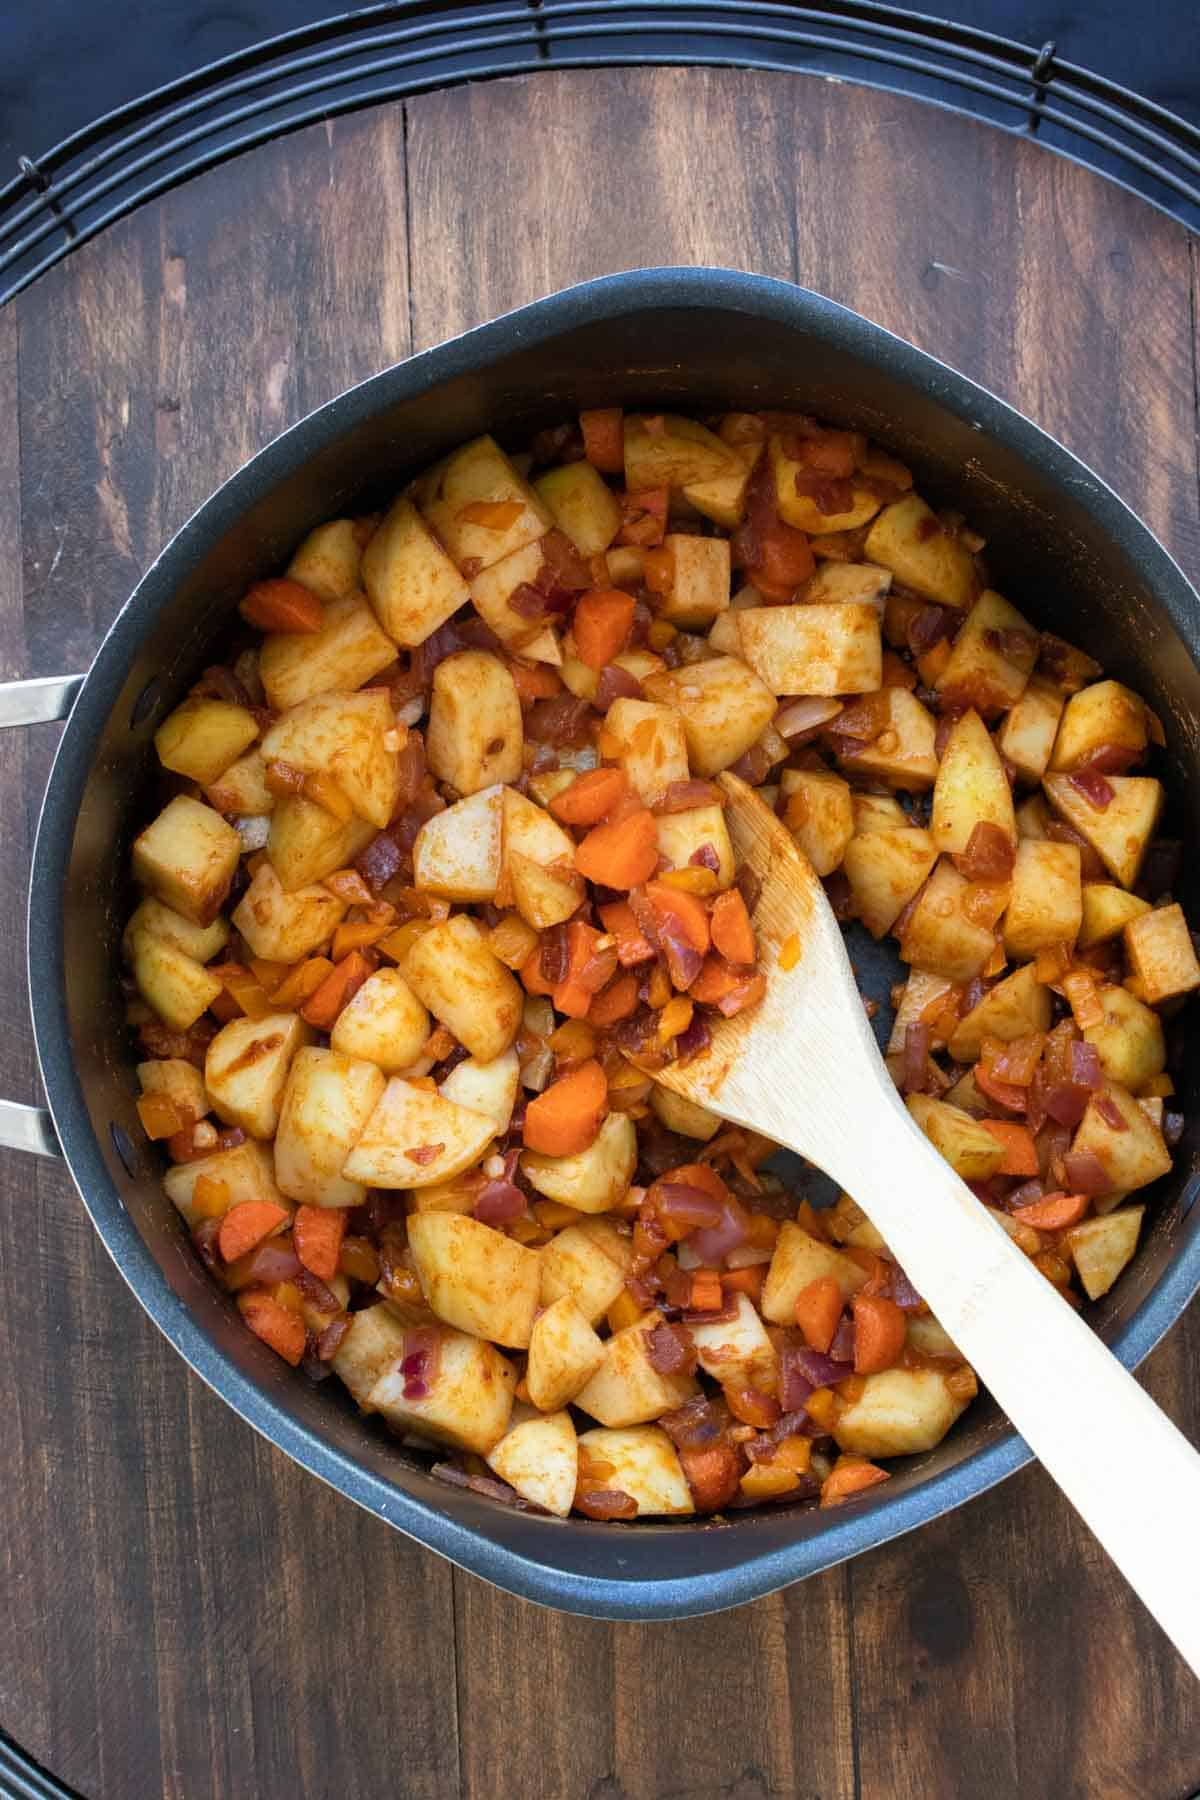 Wooden spoon stirring sweet potatoes, carrots and onion in a pot